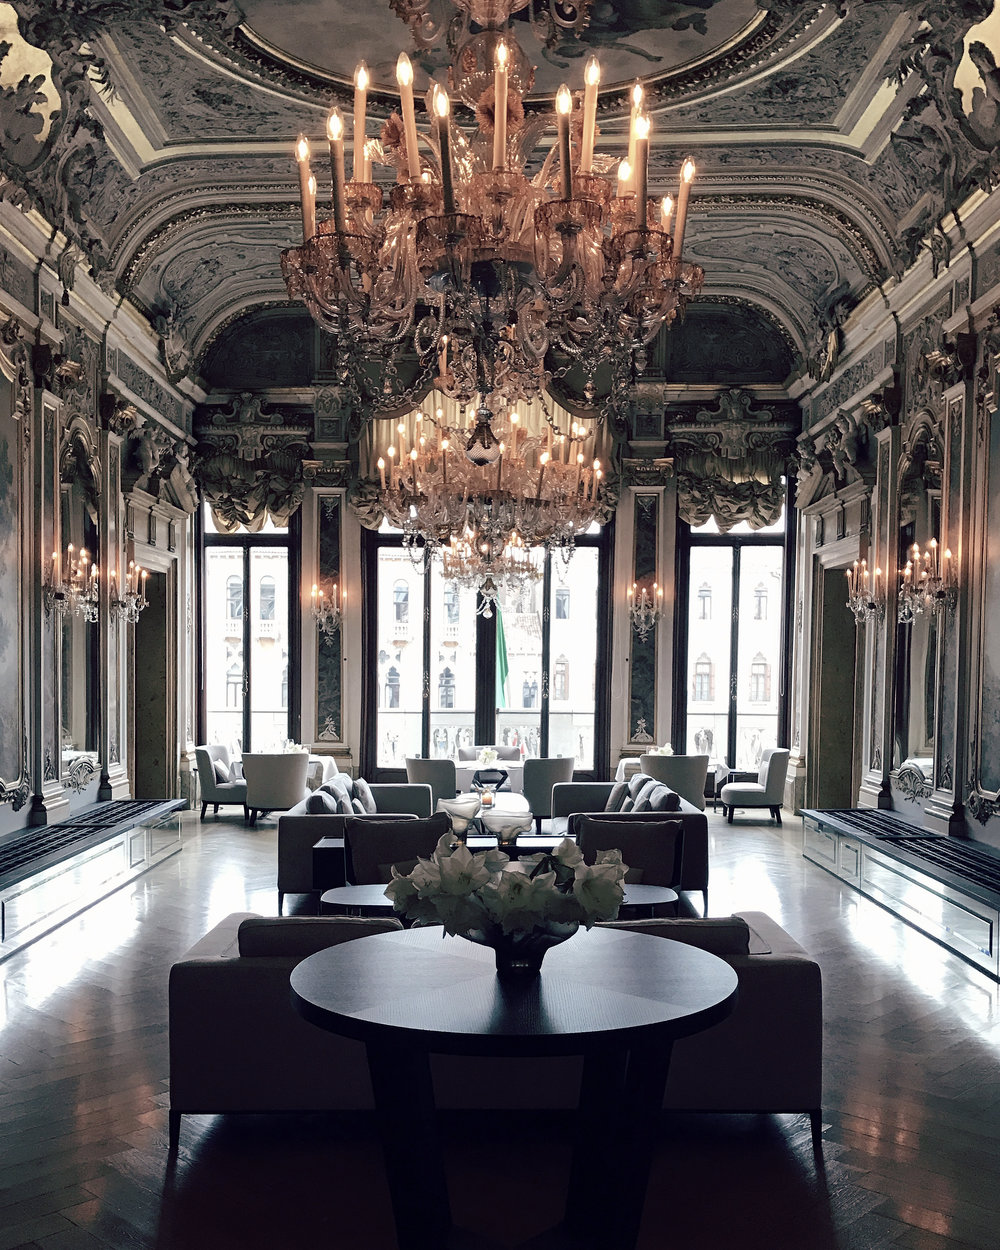 Aman Venice  – set in the 16th-century palazzo Papadopoli on the Grand Canal – is home to museum-quality treasures including Tiepolo frescoes, gilded ceilings and centuries-old leather wall coverings. Thus it comes as no surprise that George Clooney and Amal Alamuddin have chosen this 7 star Grande Hotel as the location for their celebrity-studded wedding.